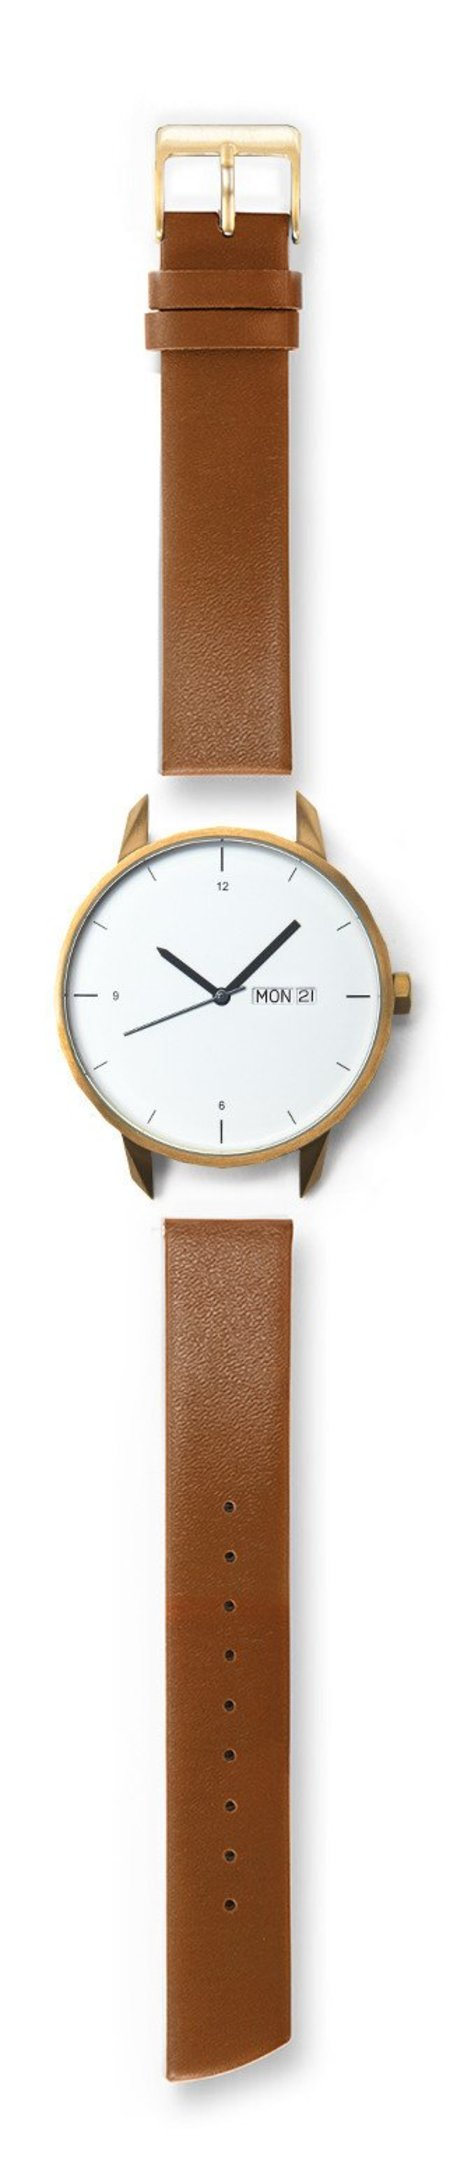 Tinker Watches 42mm Gold Watch Camel Strap